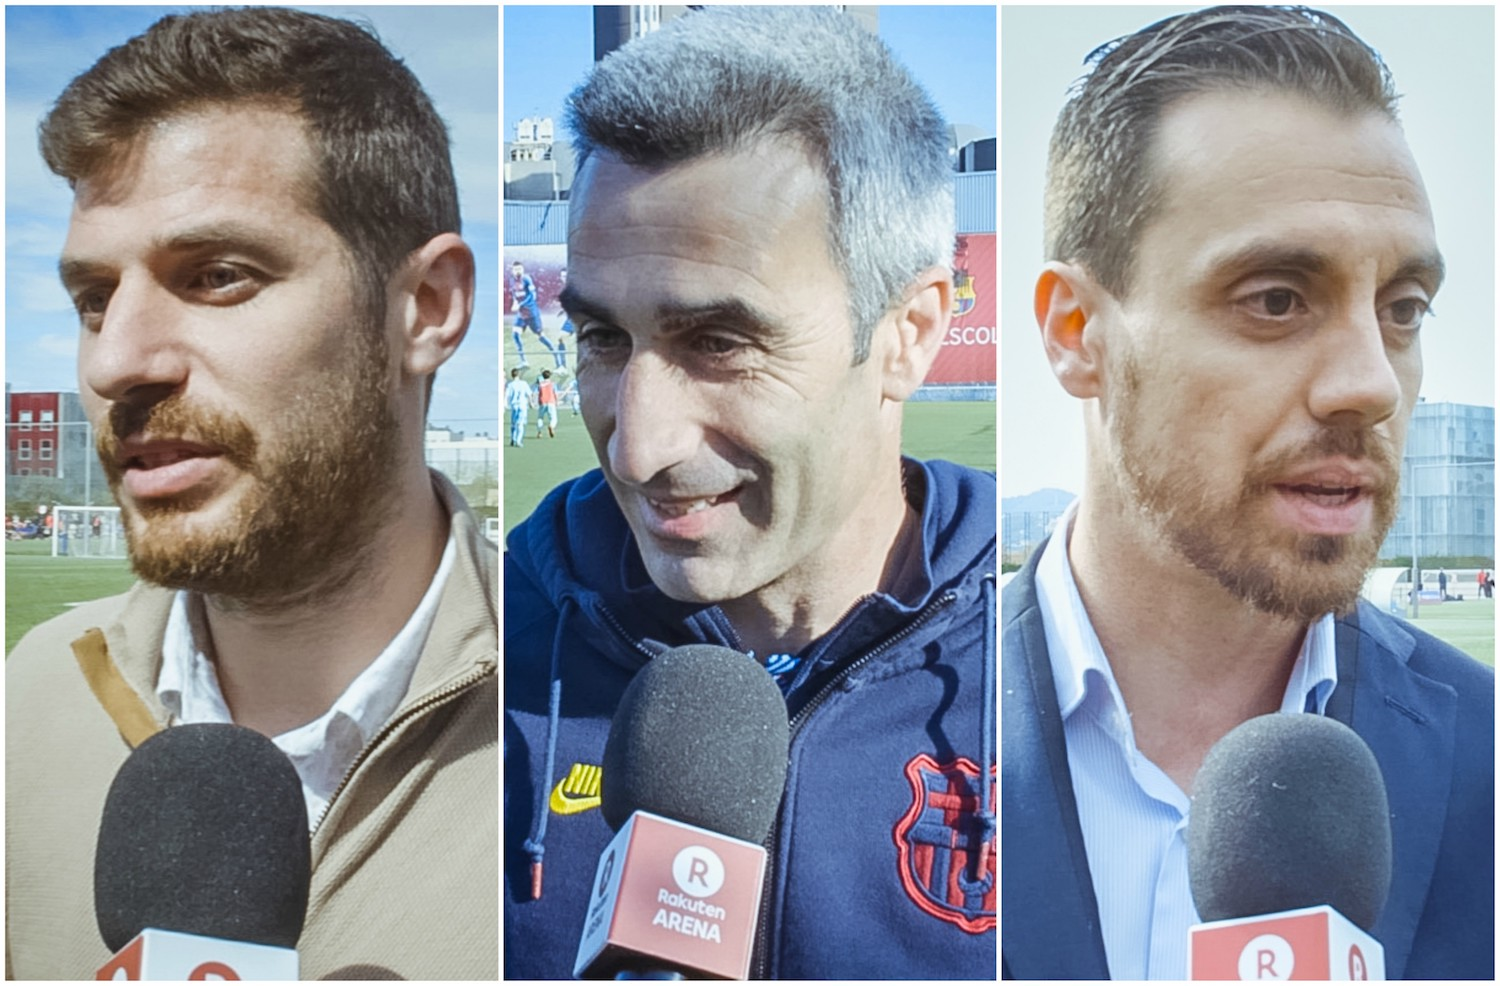 FCBEscola on empowering the soccer stars and leaders of tomorrow